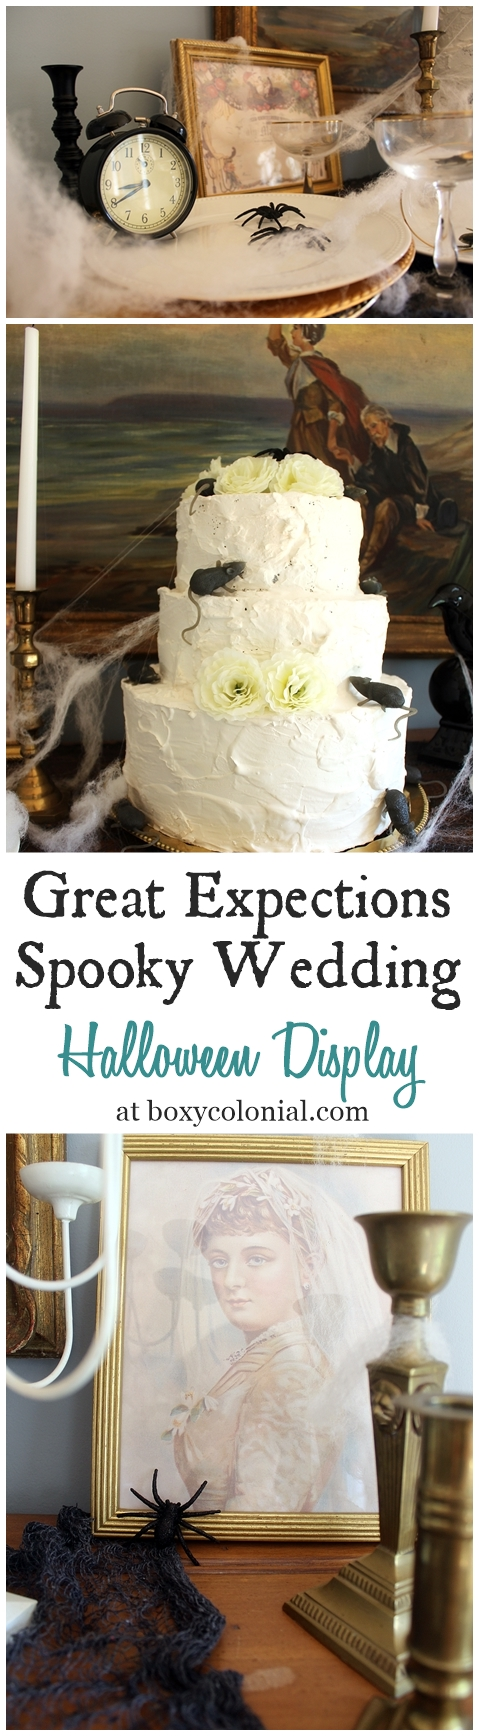 Spooky Wedding Great Expectations Halloween Display -